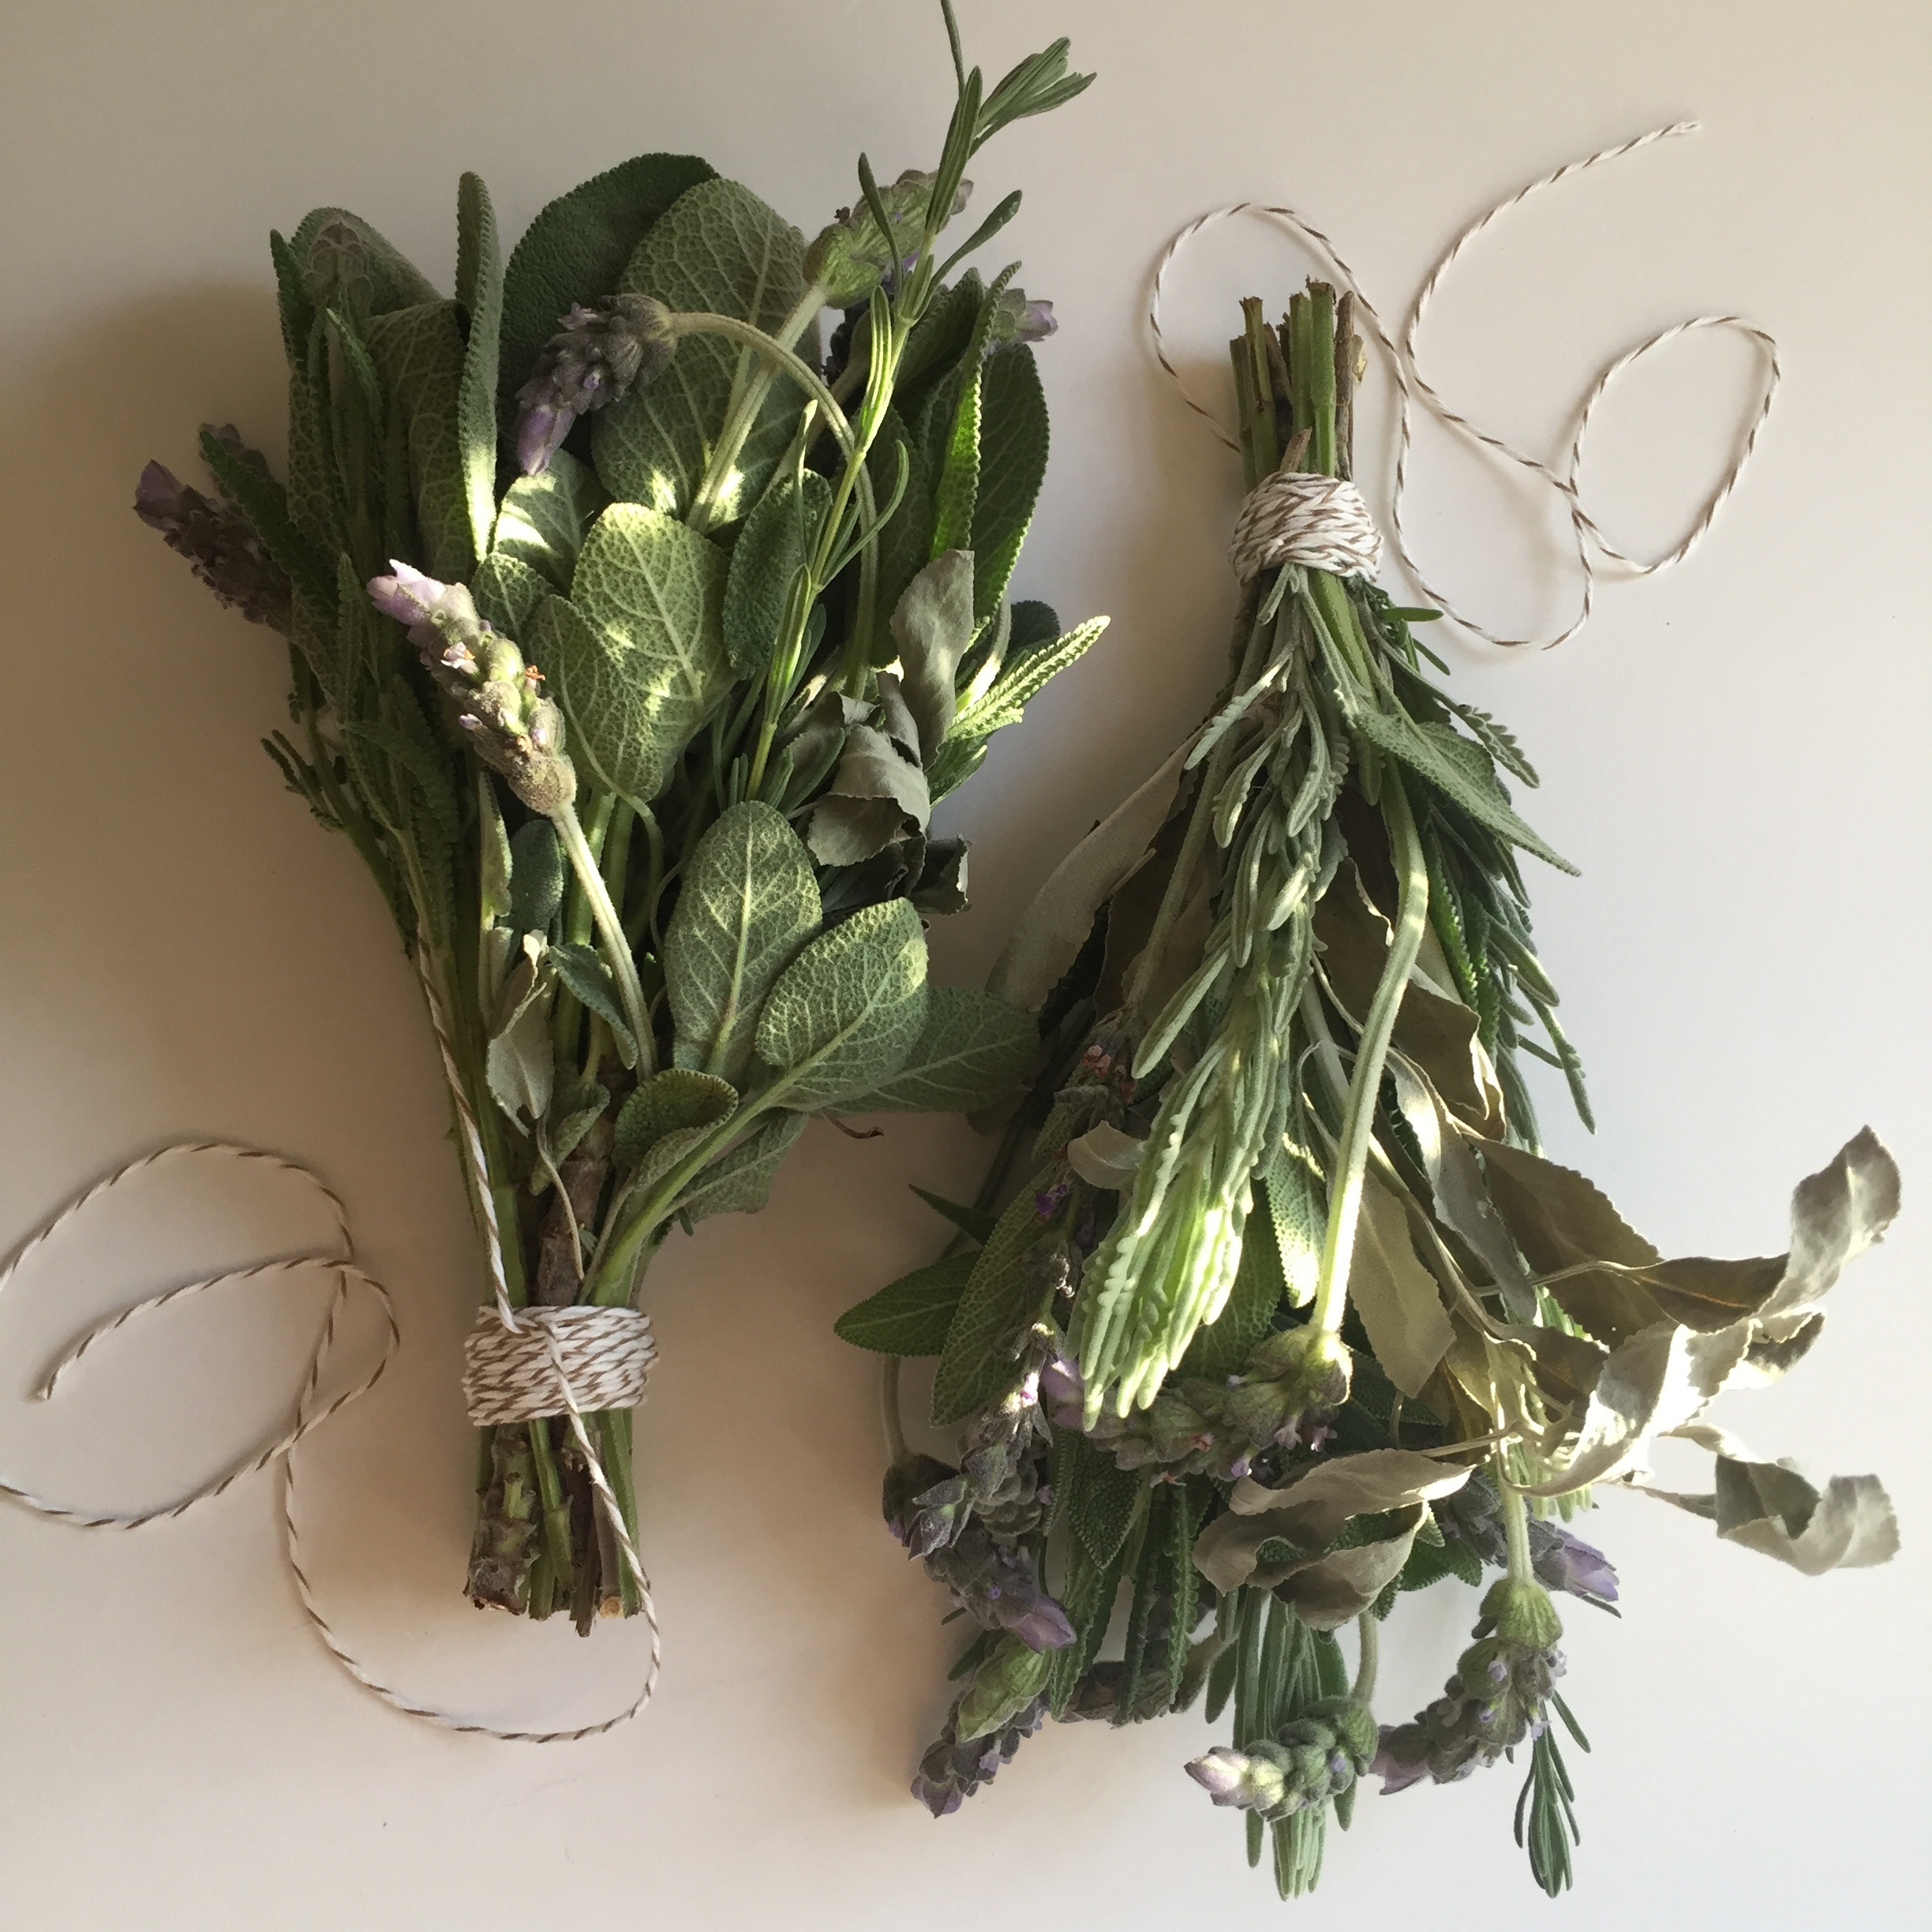 LAVENDER + SAGE BUNDLES FOR AN ALL-SENSORY REMINDER TO STOP AND BE PRESENT.